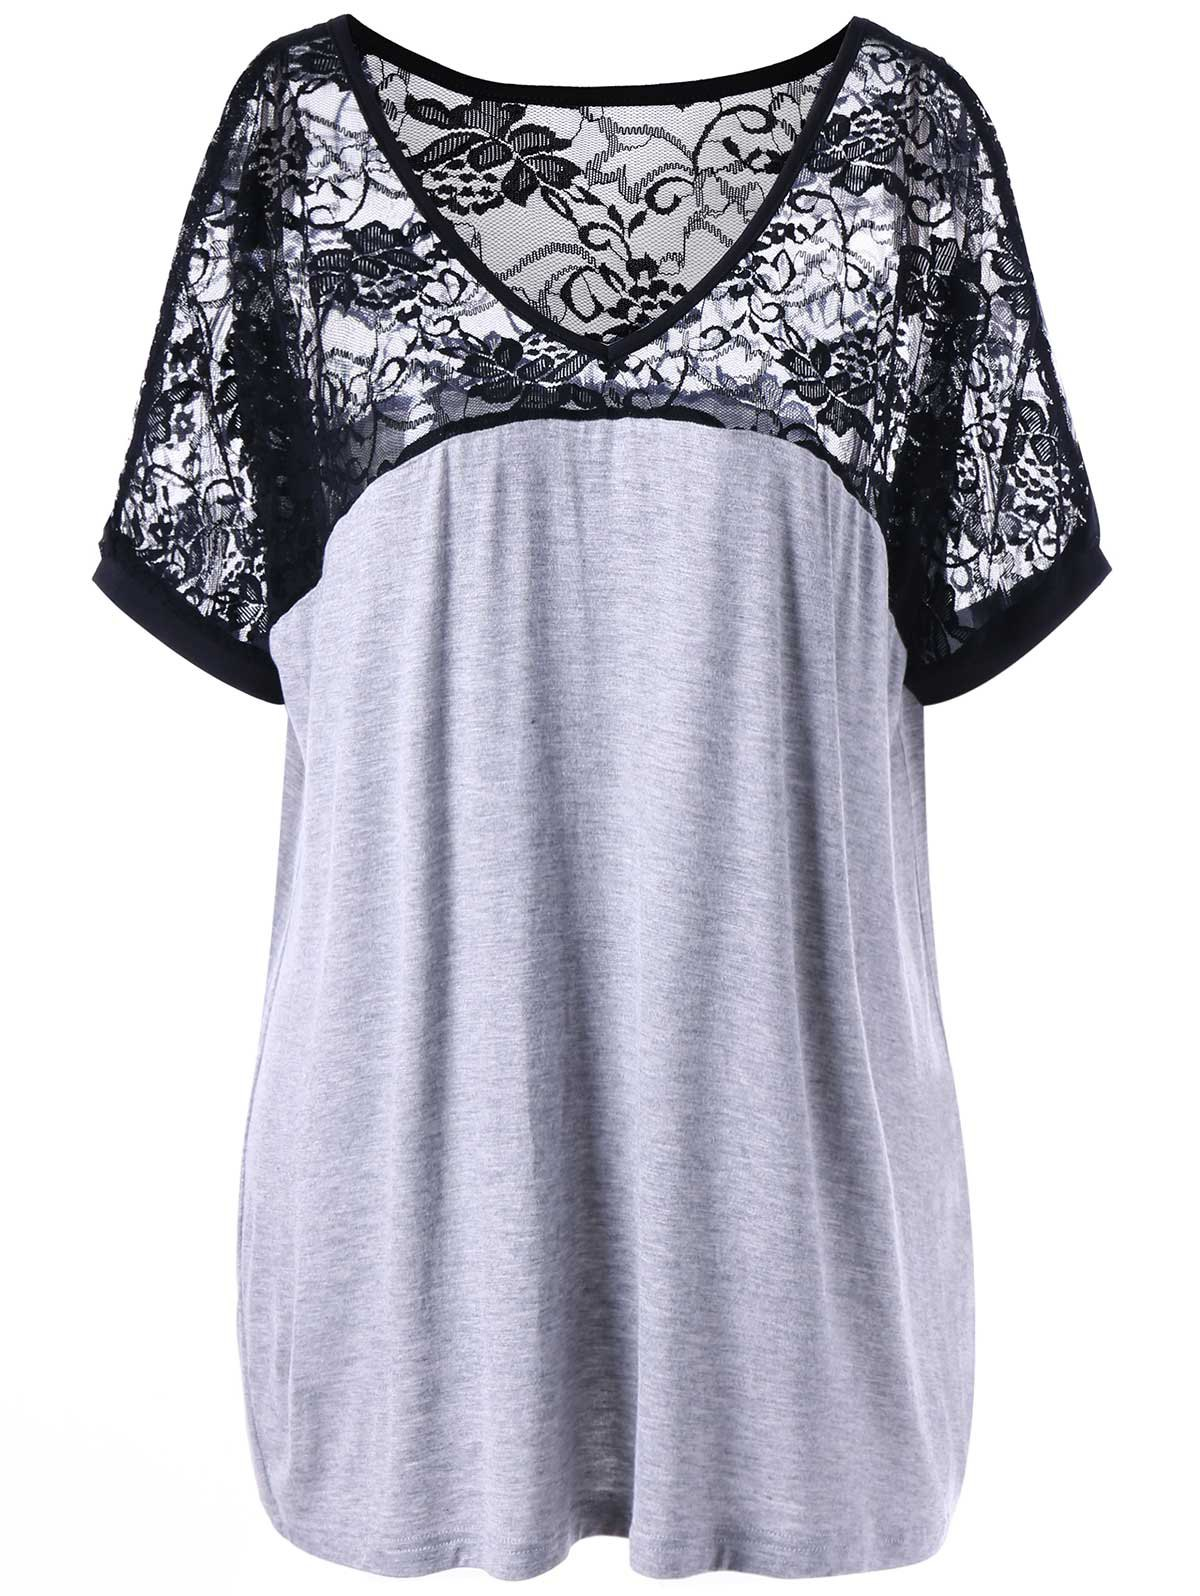 Plus Size Lace Yoke V Neck T-shirt - BLACK/GREY 3XL